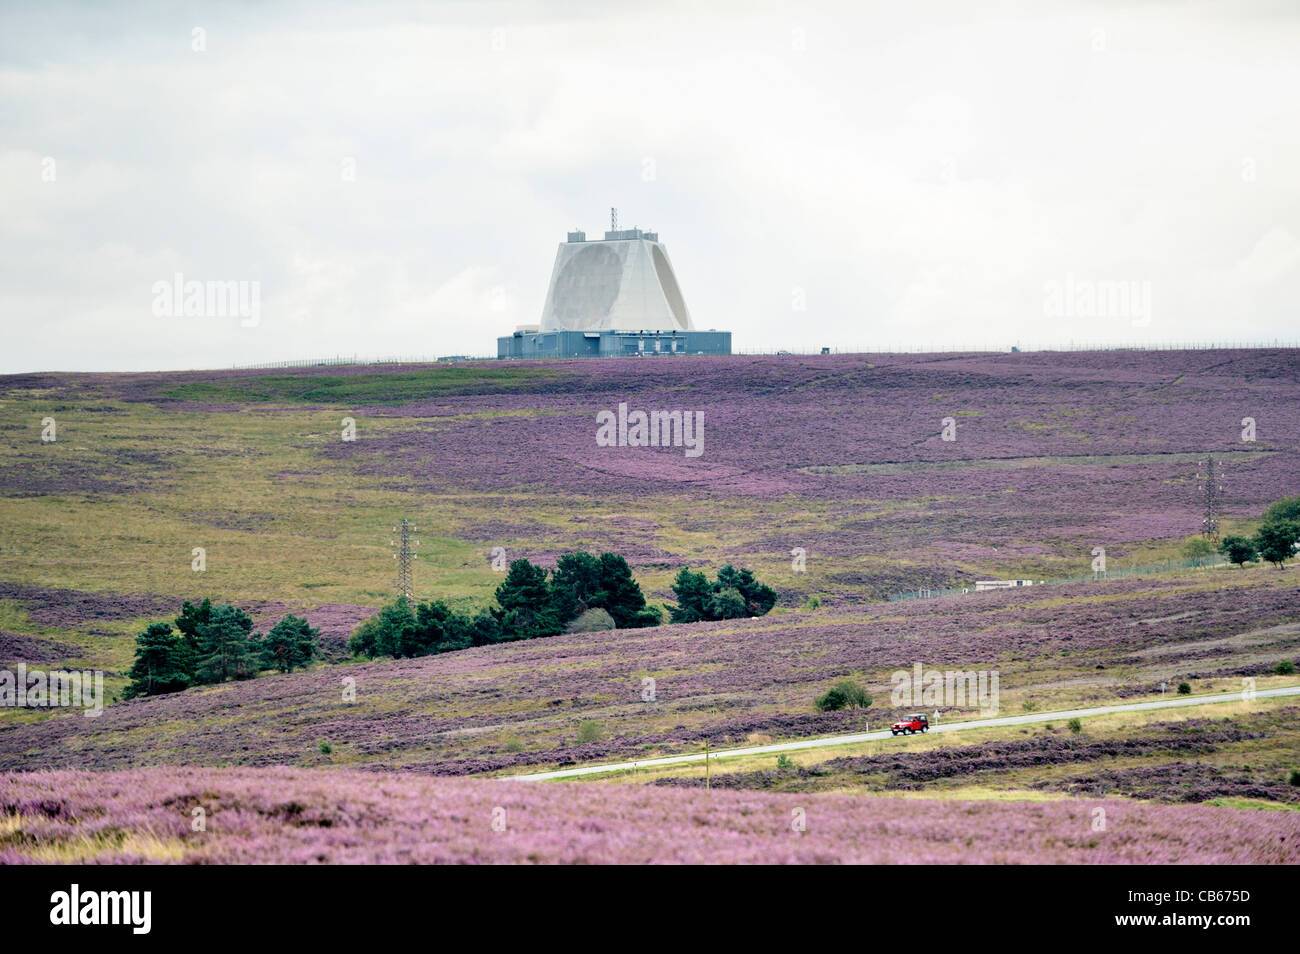 Ministry of Defence radar early warning facility at Fylingdales, North York Moors, UK. Replaced earlier golf ball - Stock Image